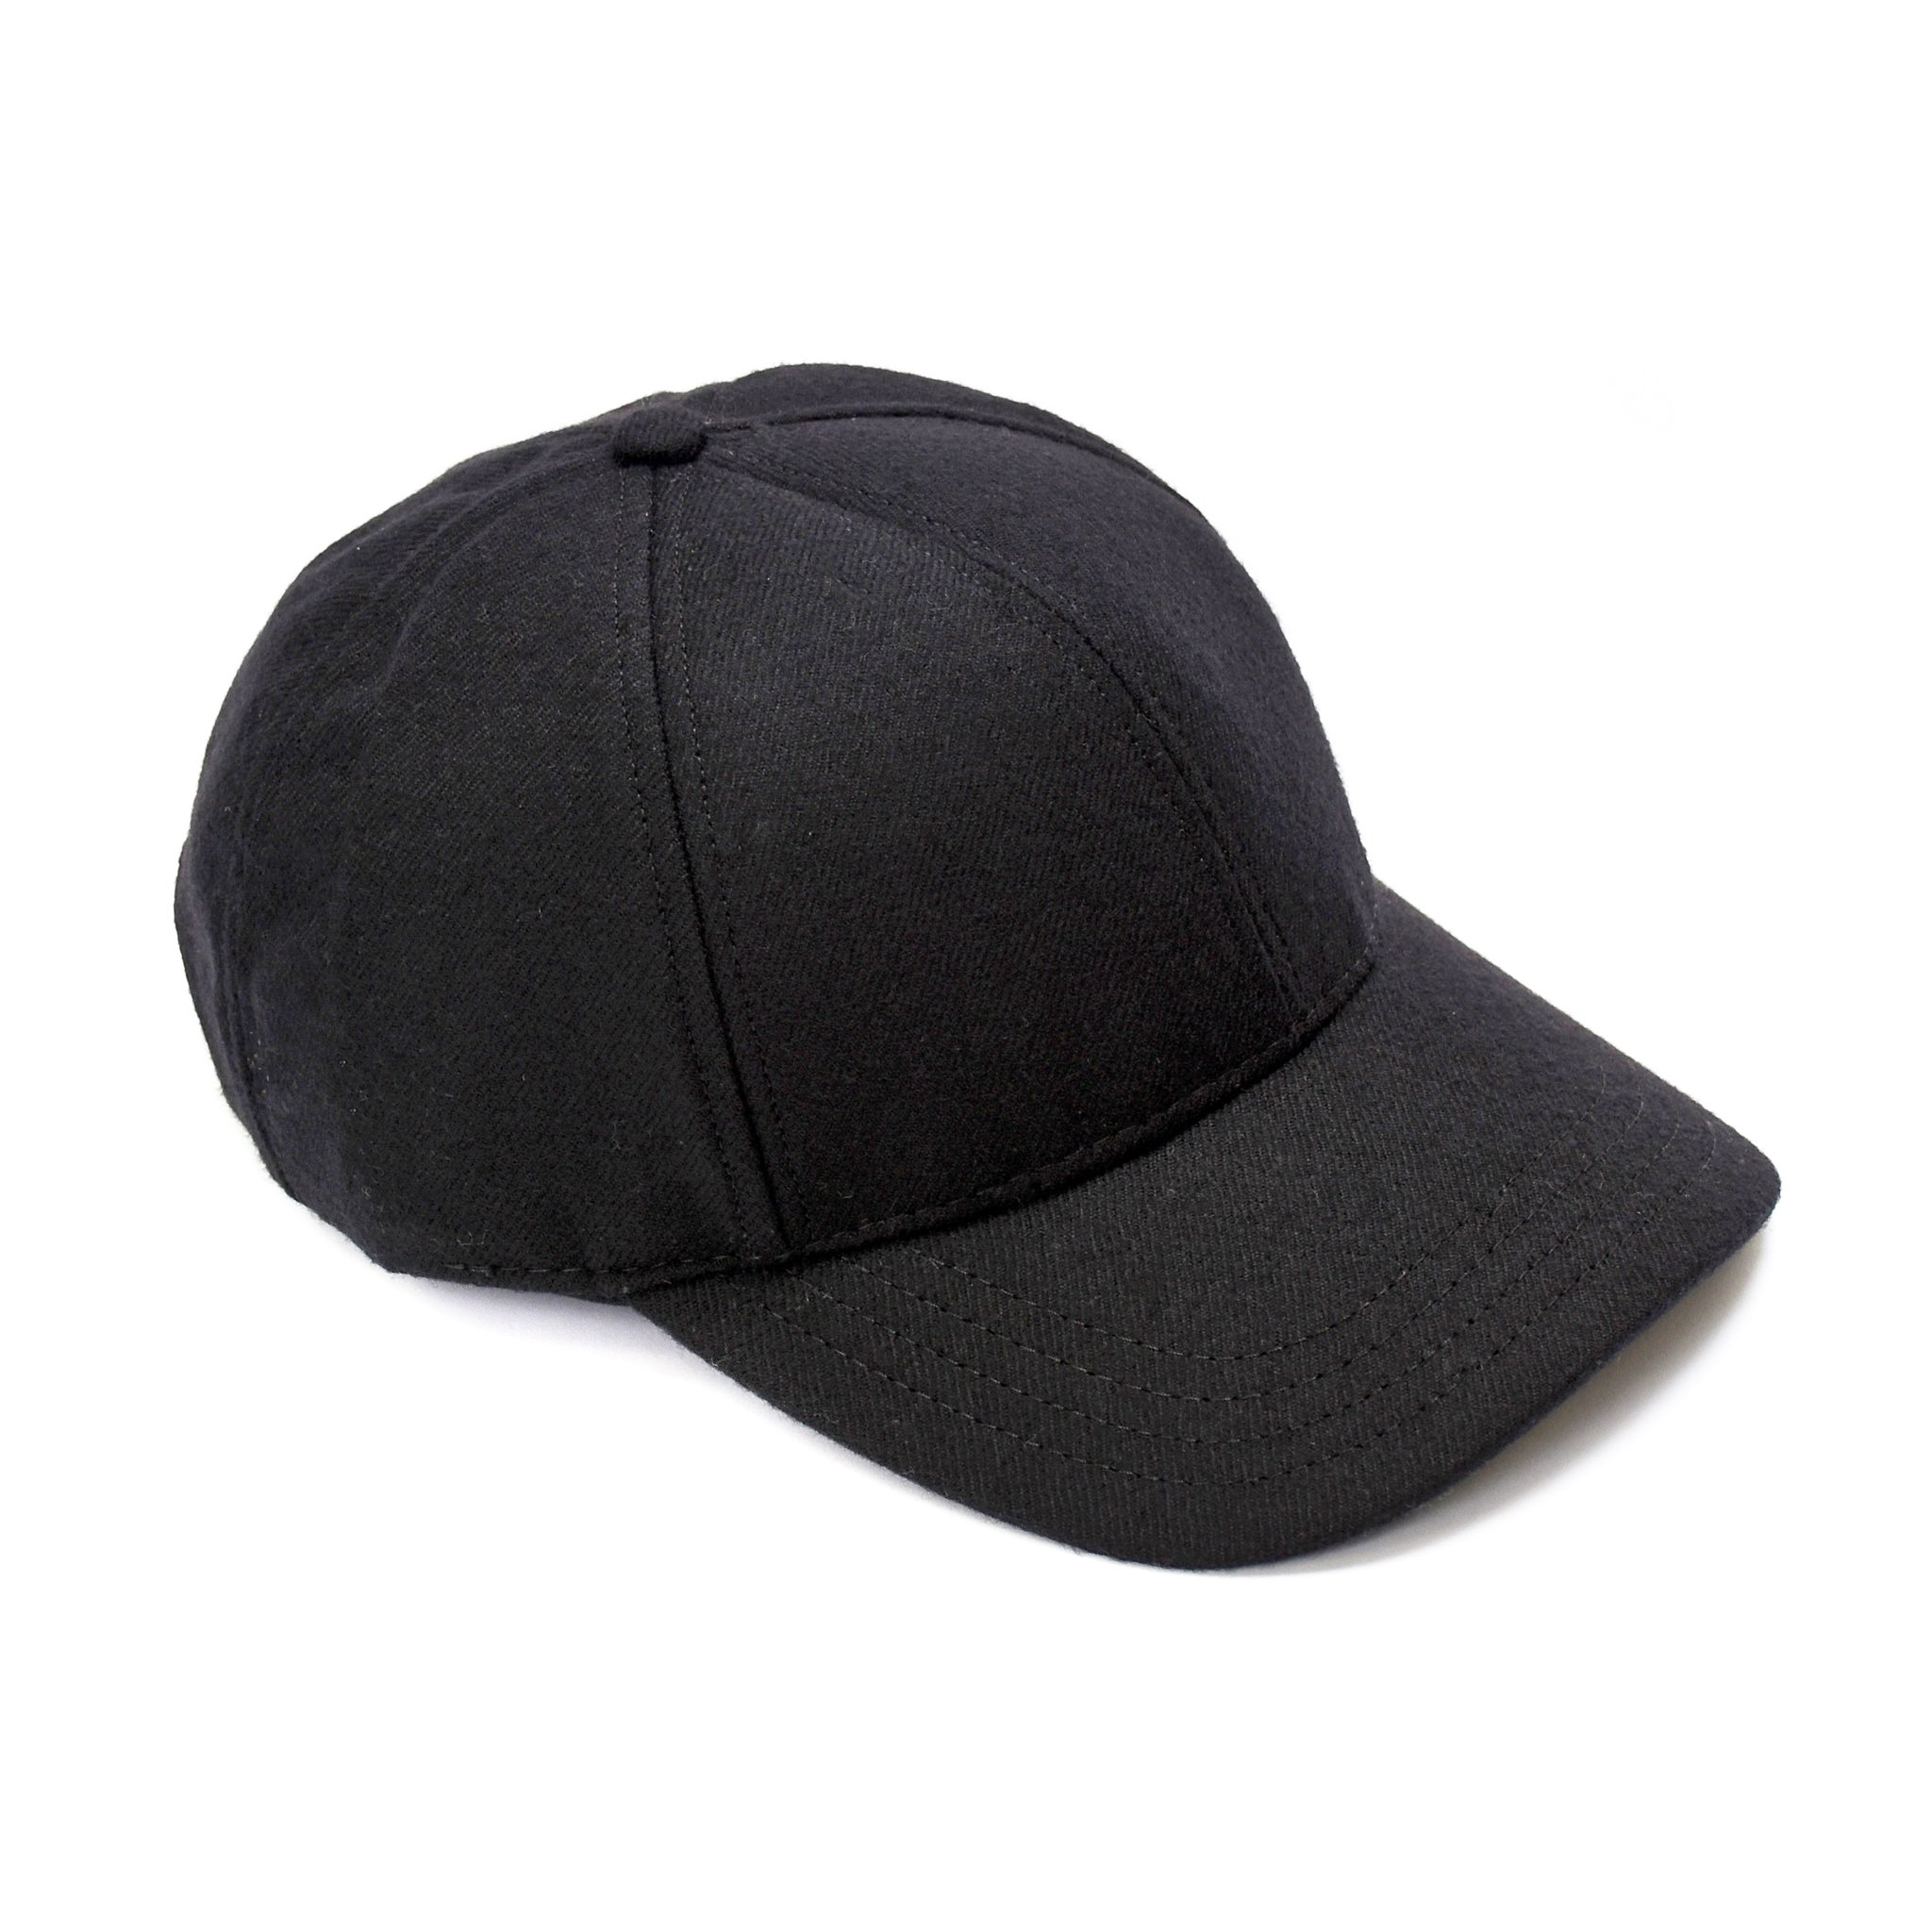 Men's Fall Fashion Essentials Wool Cap